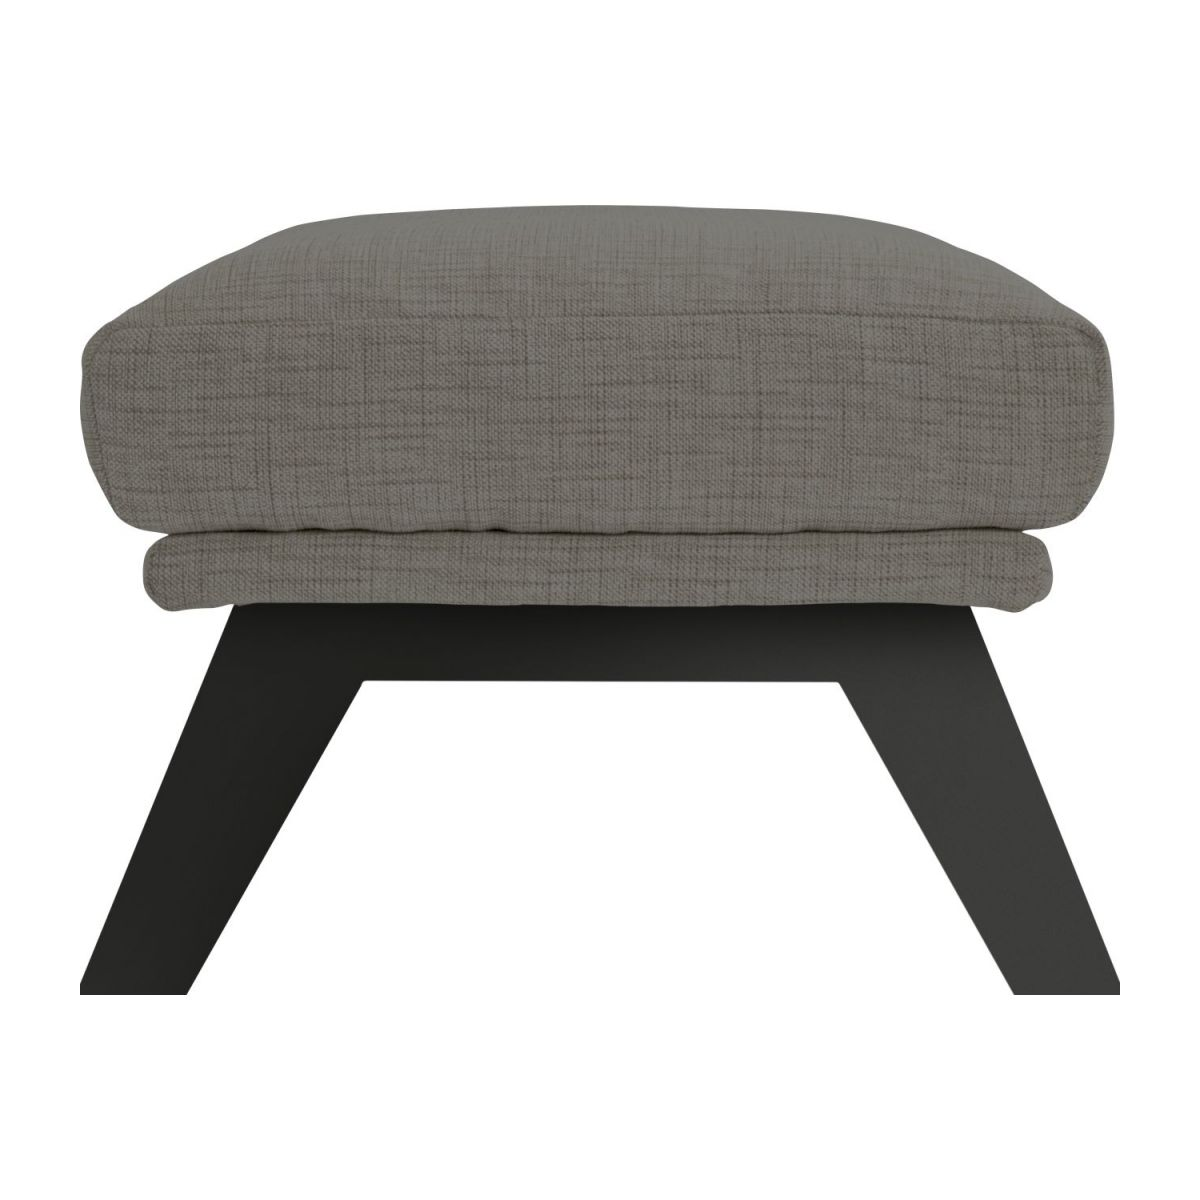 Footstool in Ancio fabric, river rock with dark legs n°5